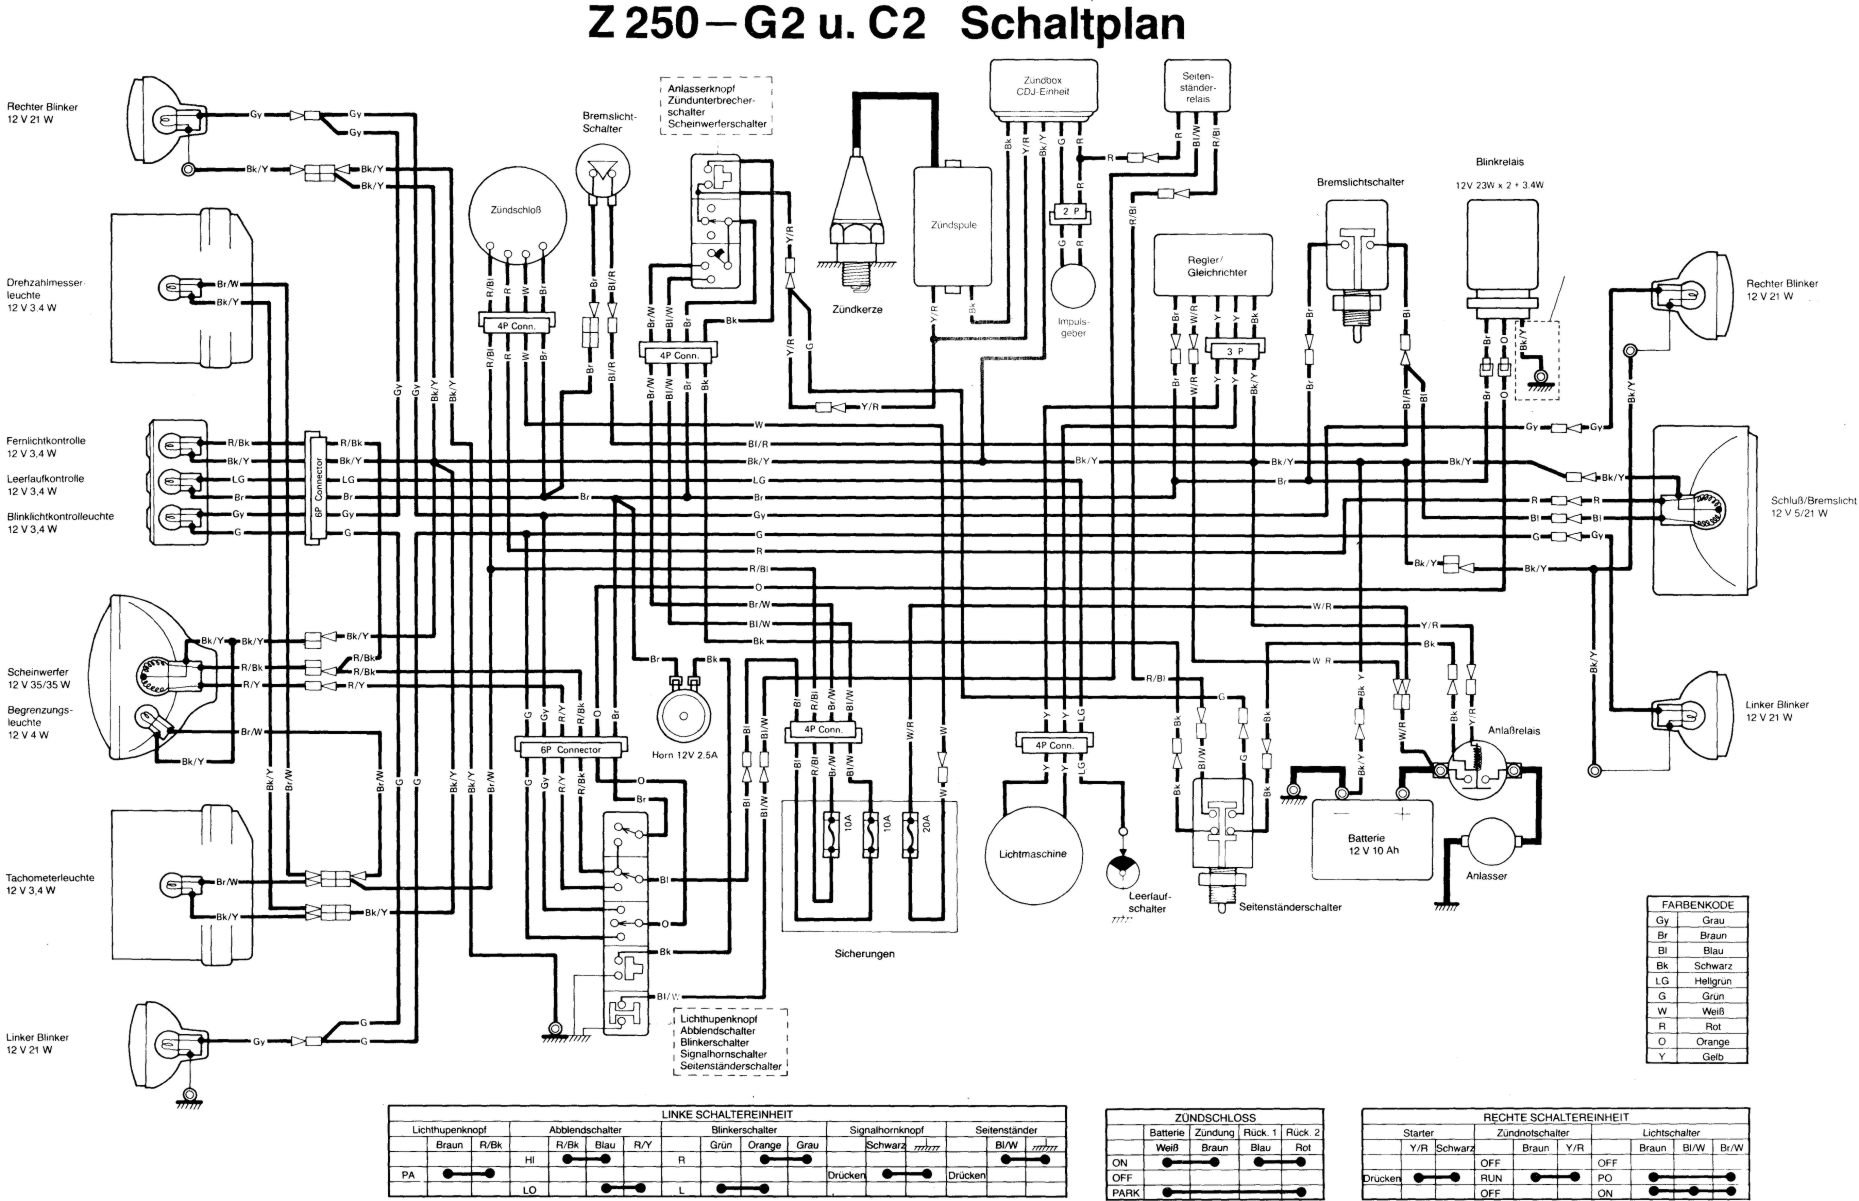 kawasaki z200 wiring diagram kawasaki wiring diagrams online i have a 1983 a reg z200 and im renovating it using my haynes